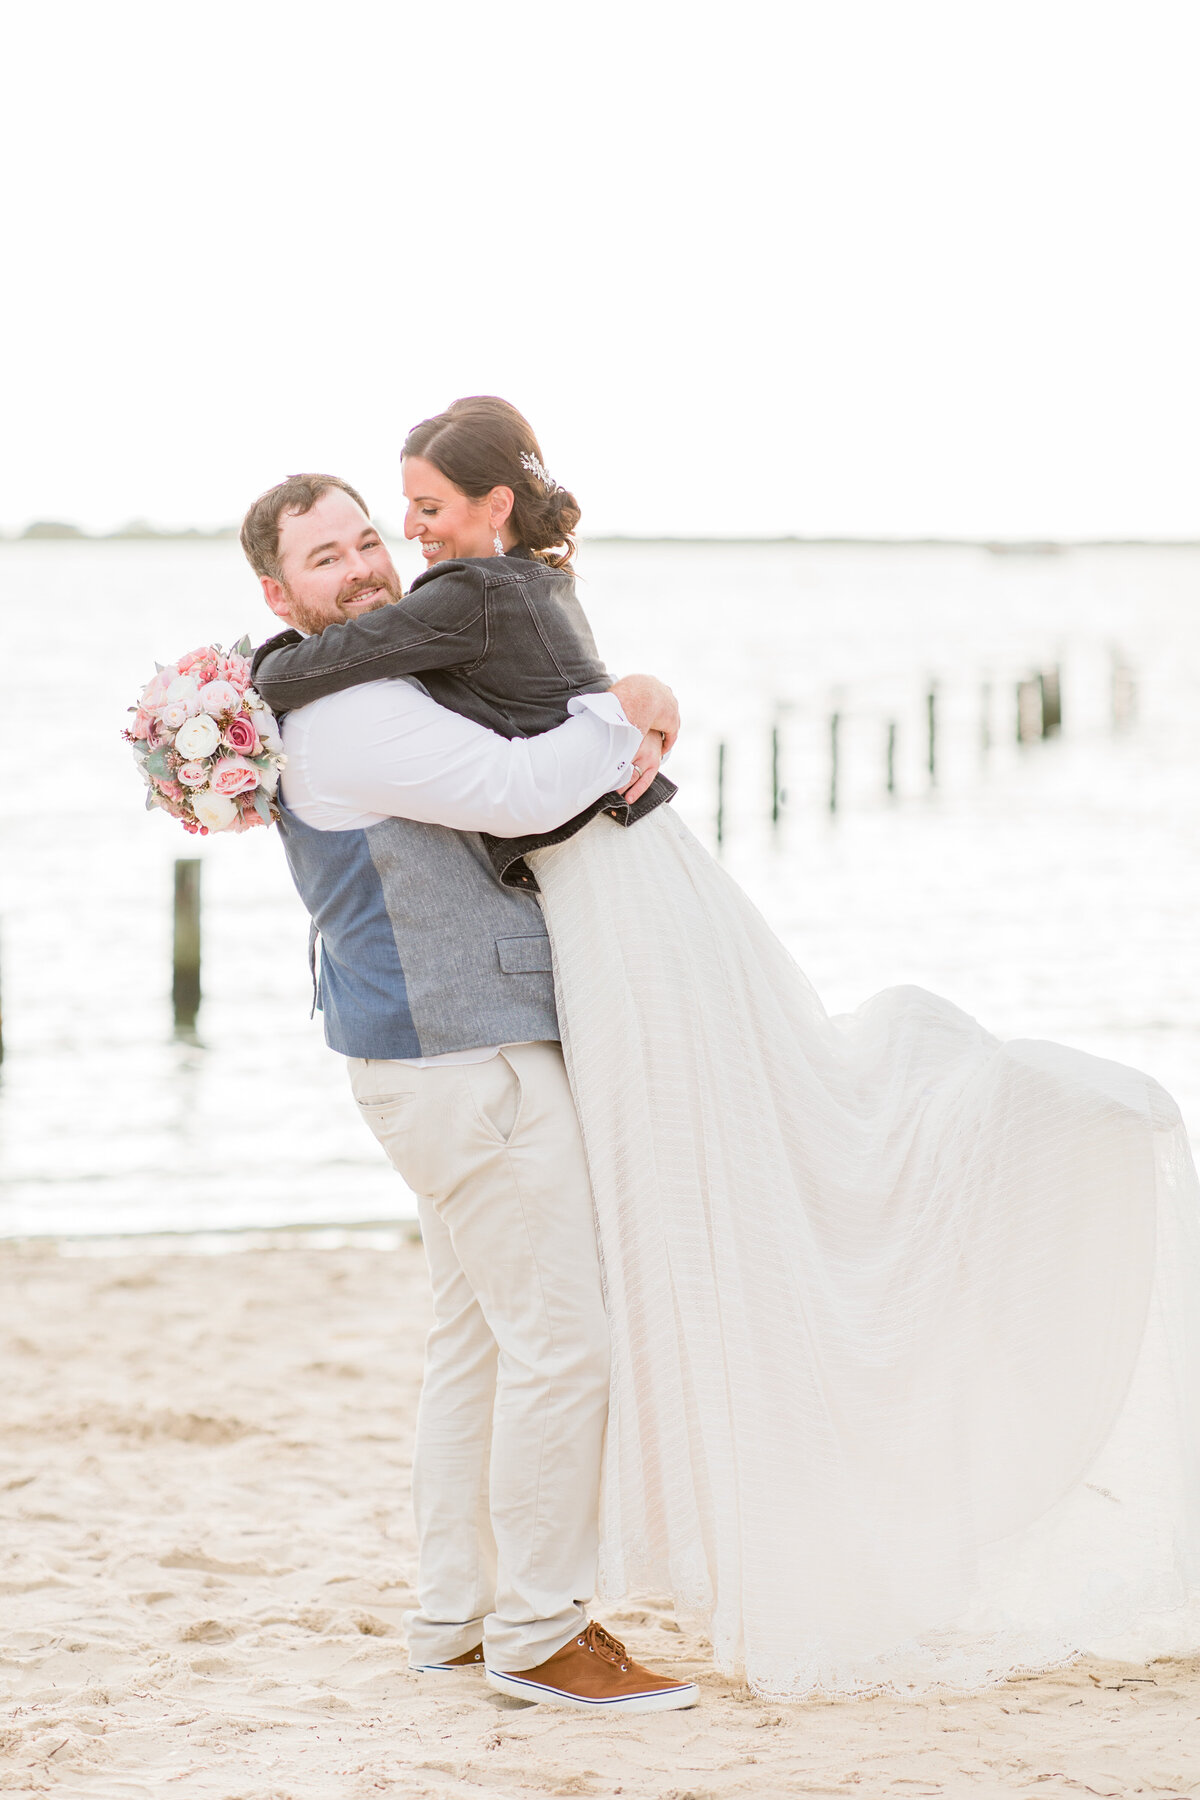 Beach_Themed_Wedding_at_Brant_Beach_Yacht_Club_in_Long_Beach_Island_LBI_New_Jersey-108